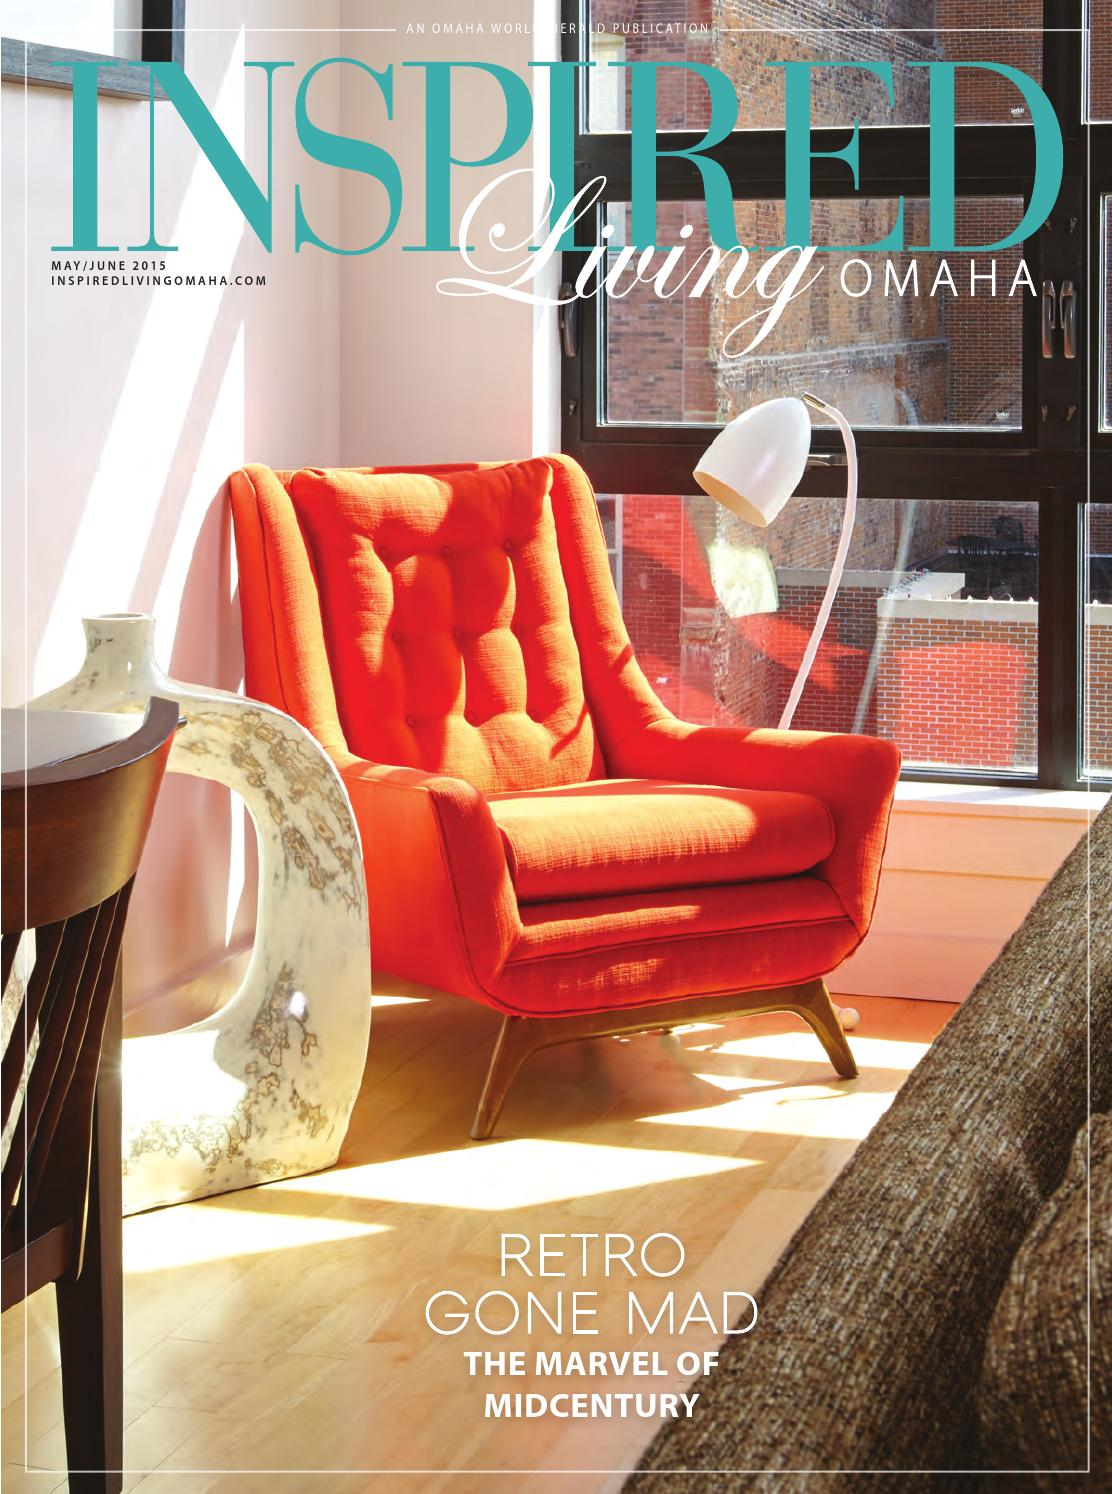 Living Room Furniture Omaha Ne inspired living omahaomaha world-herald - issuu